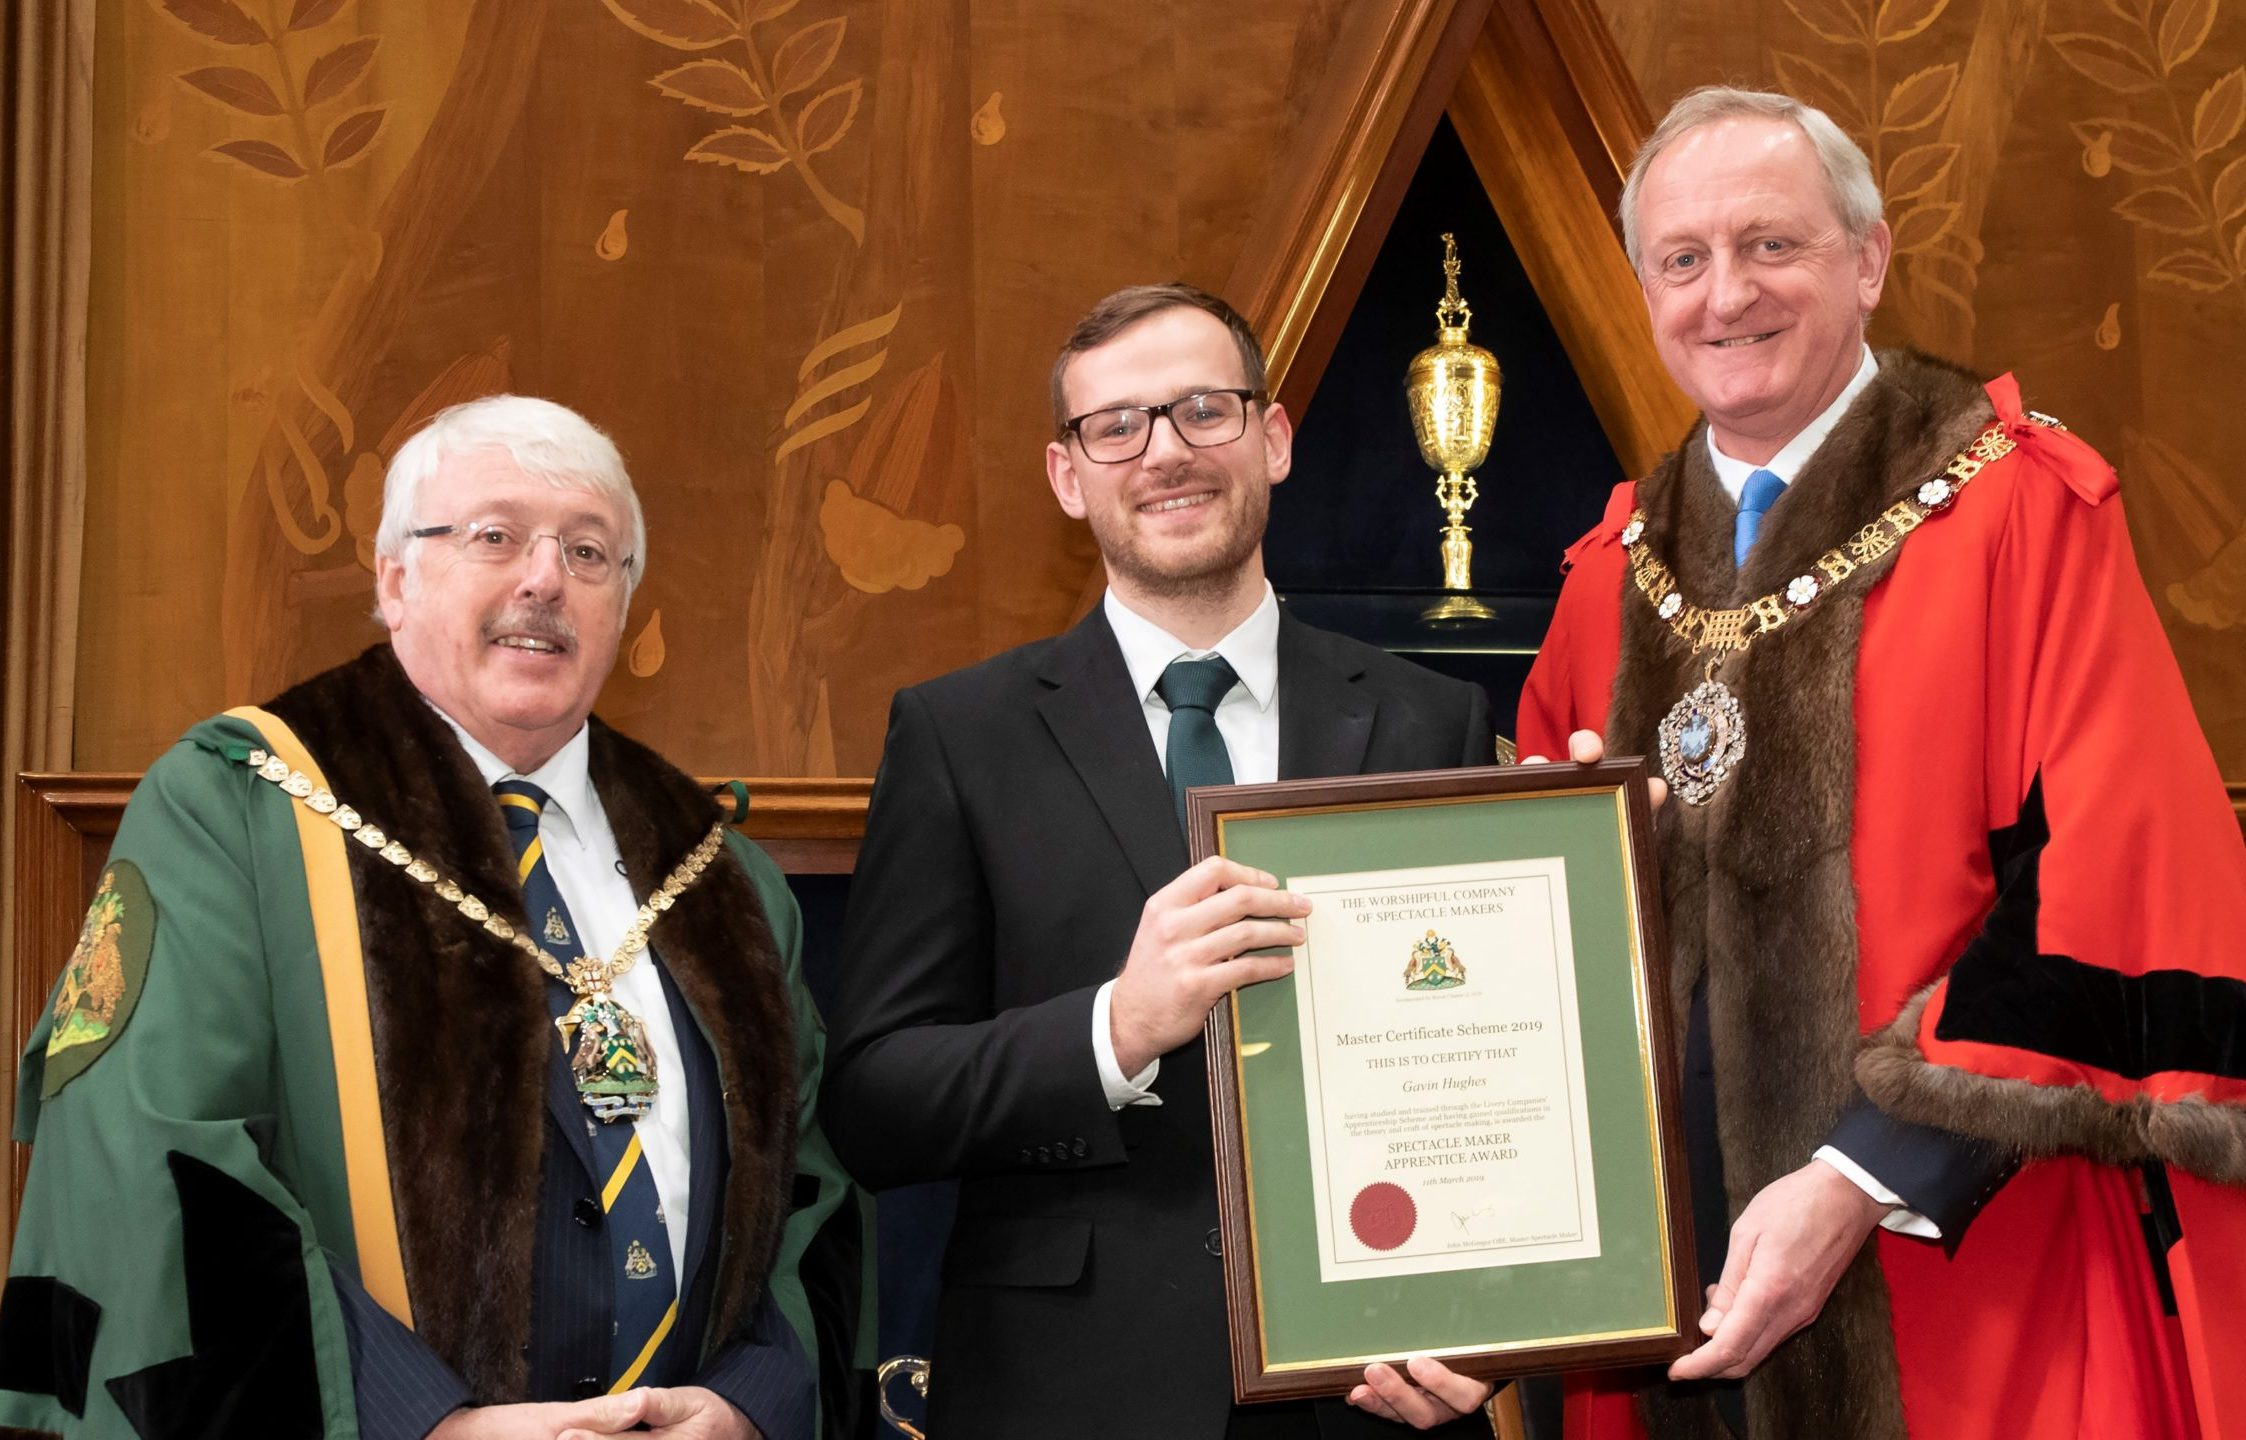 Modern apprentice Gavin Hughes, proudly receiving his Master Certificate Scheme award from the Lord Mayor.